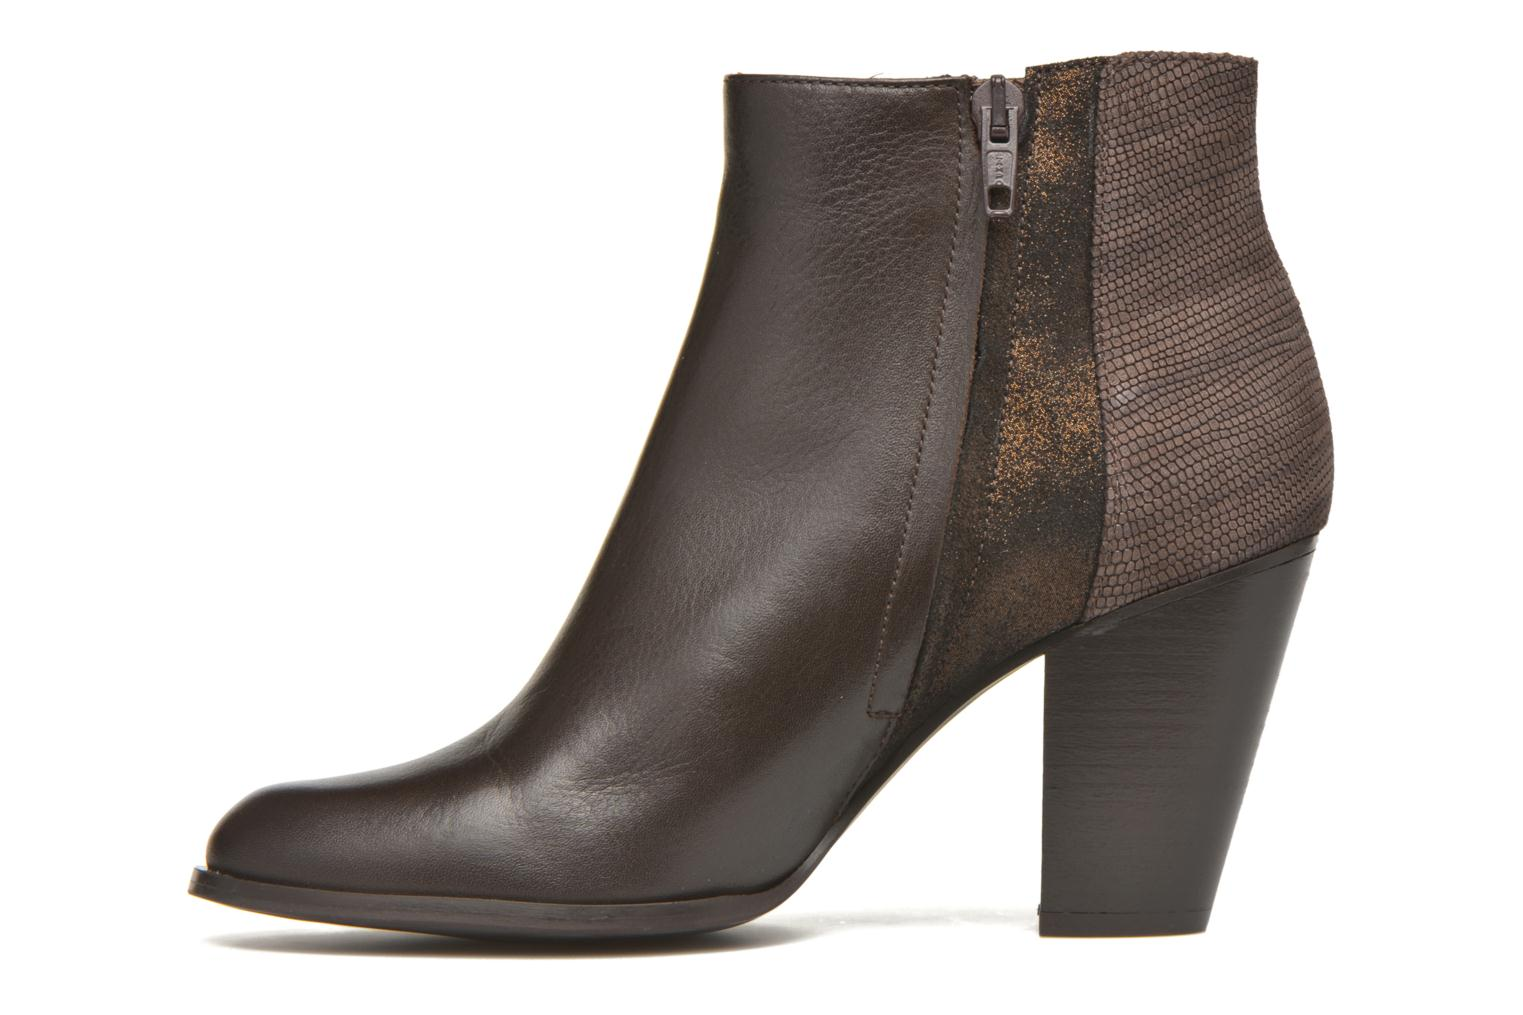 Bottines et boots Schmoove Woman Gravity delta Marron vue face